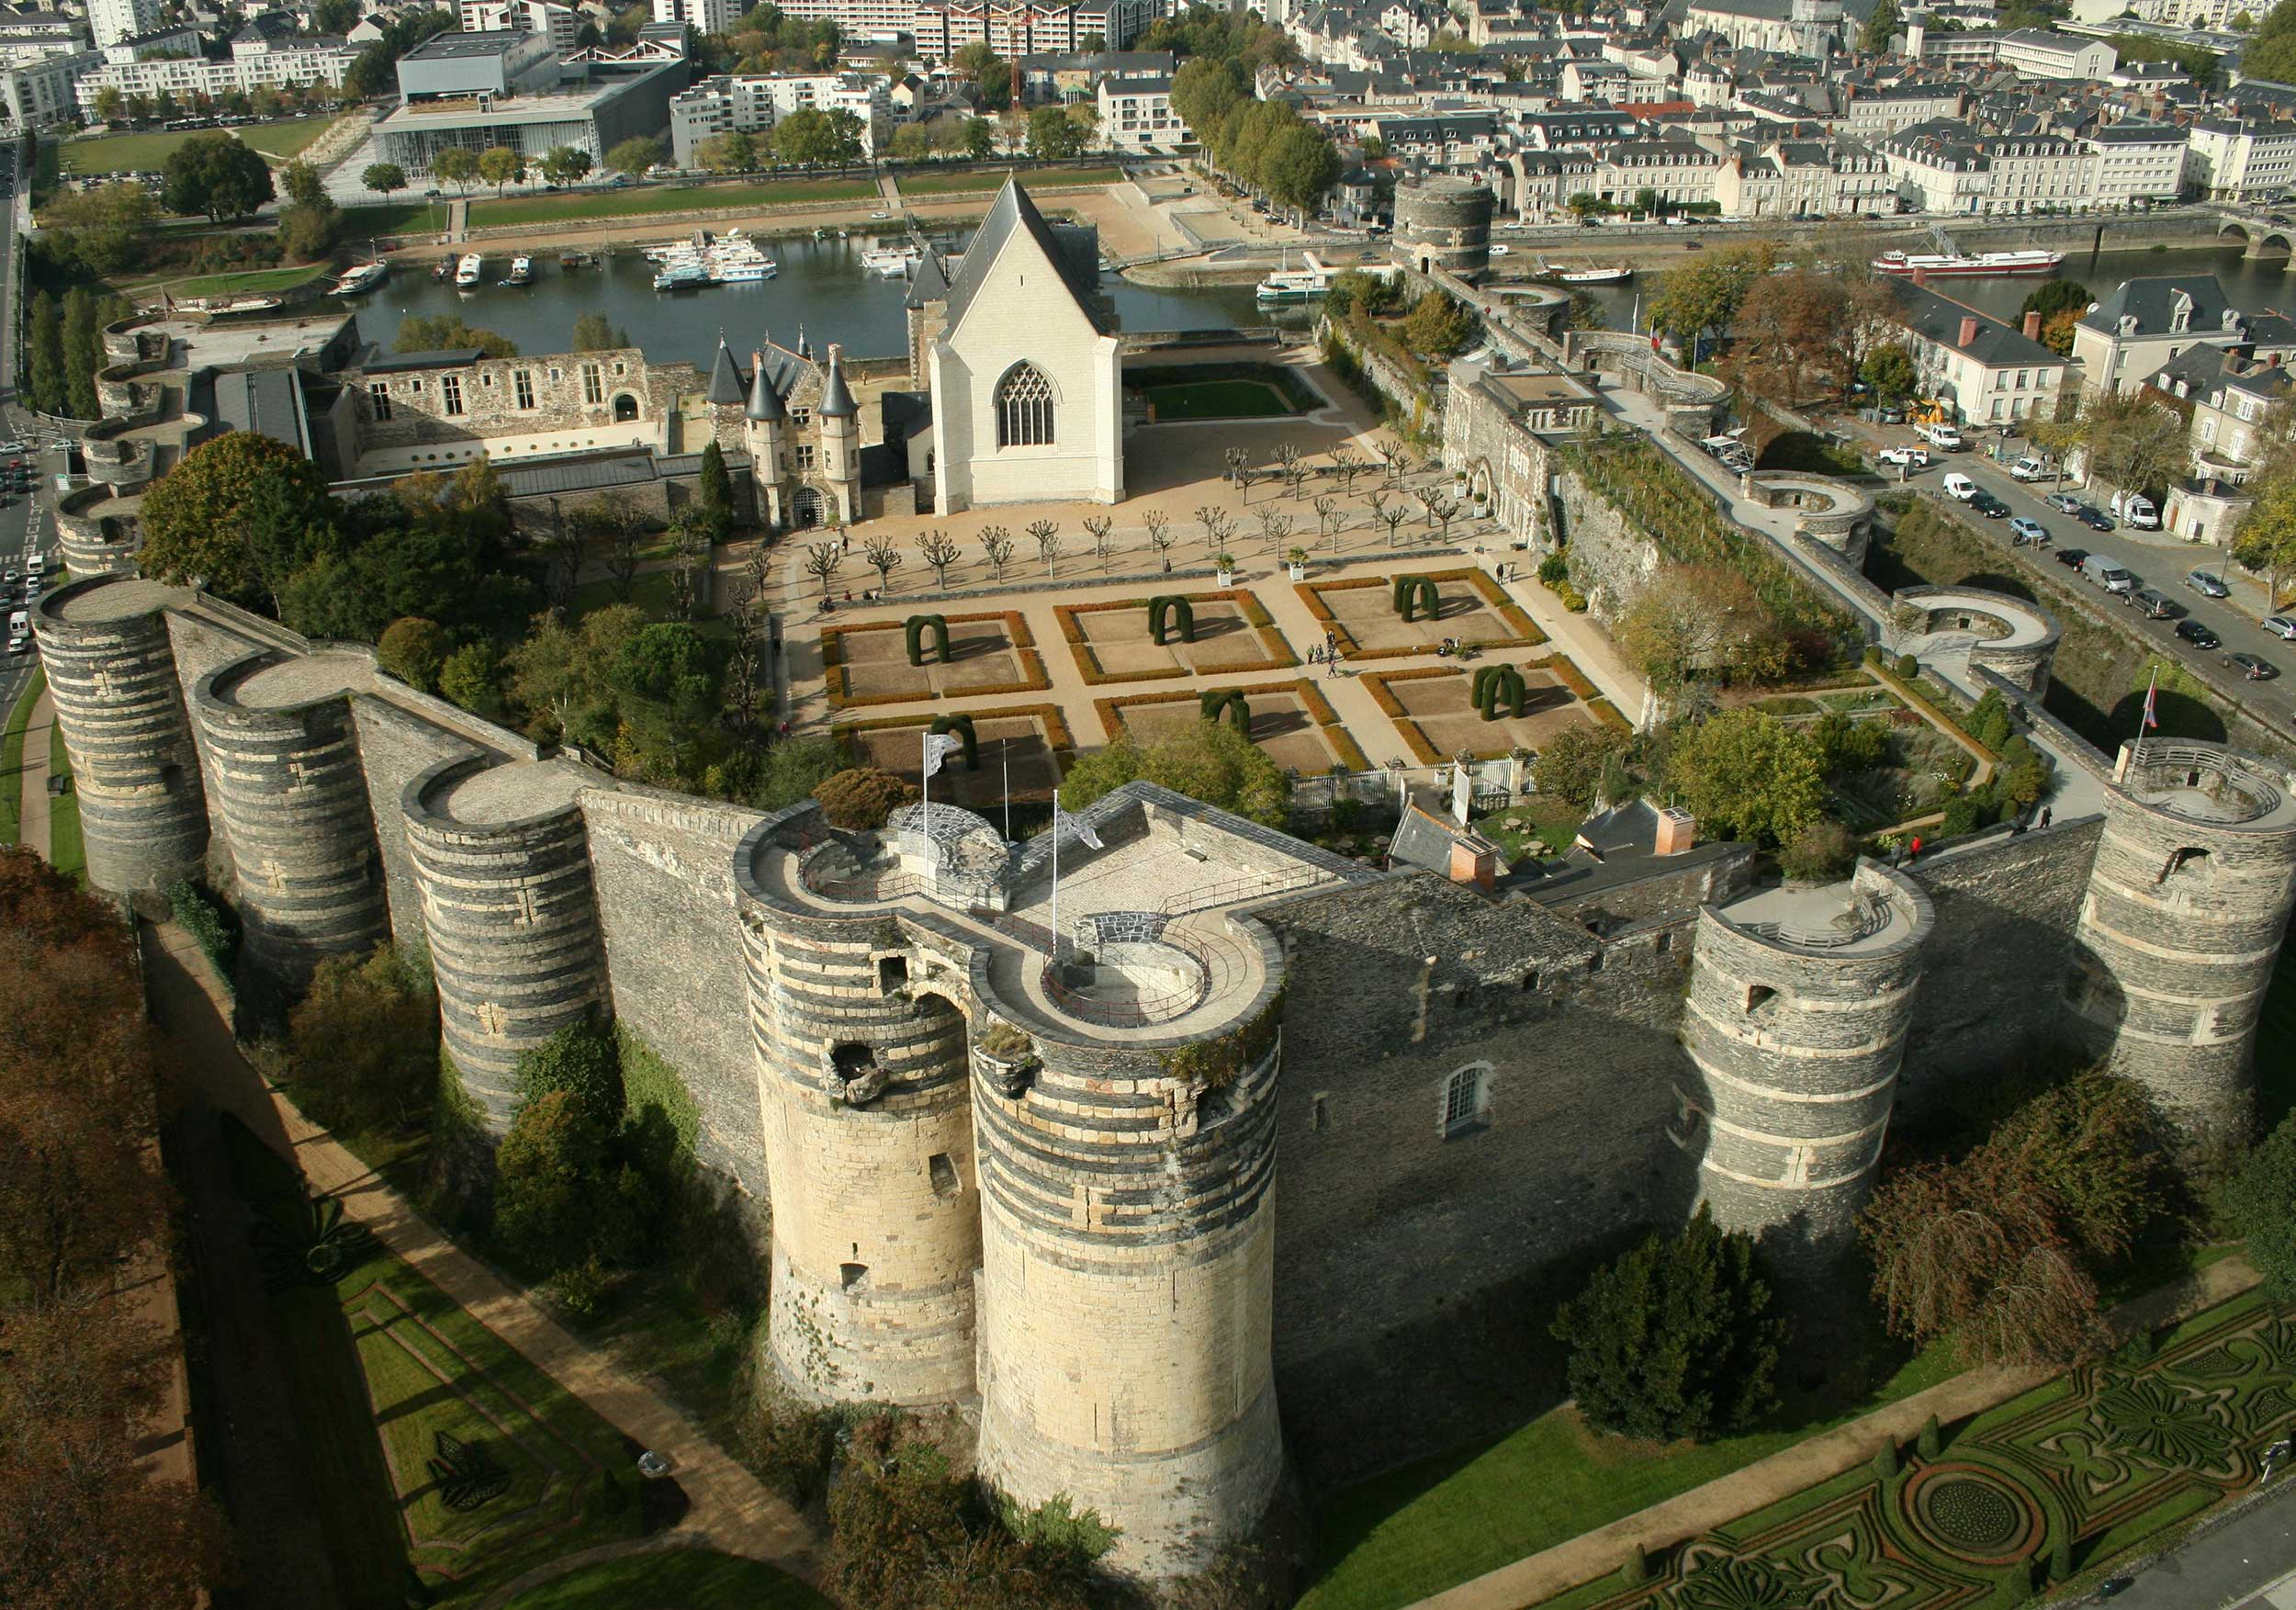 Chateau d'Angers in all it's magnificence